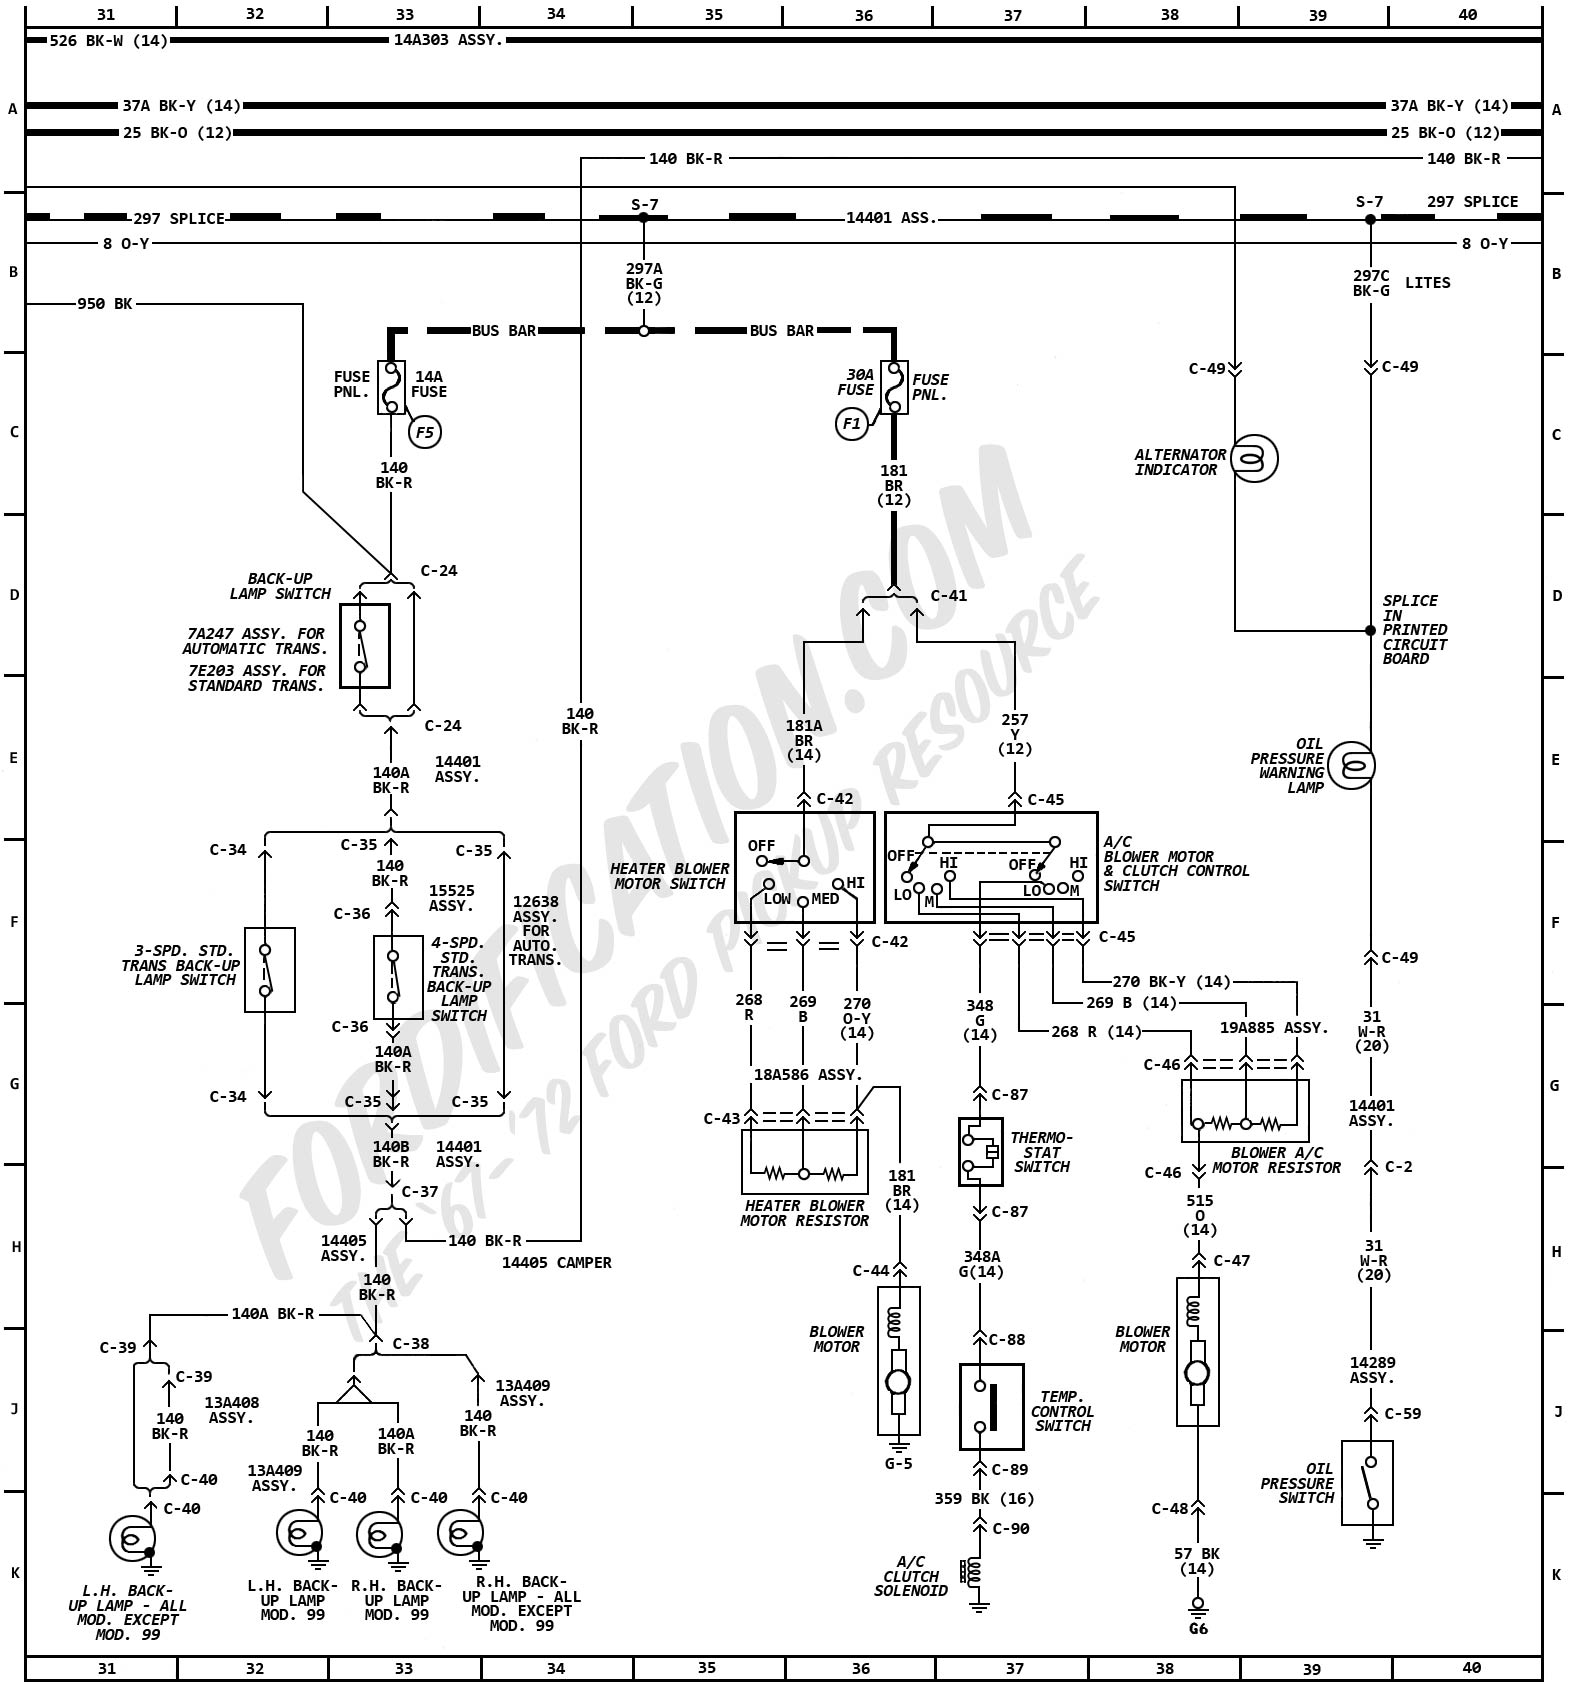 1972MasterWiring_04 1972 ford truck wiring diagrams fordification com fordification wiring diagram at gsmportal.co